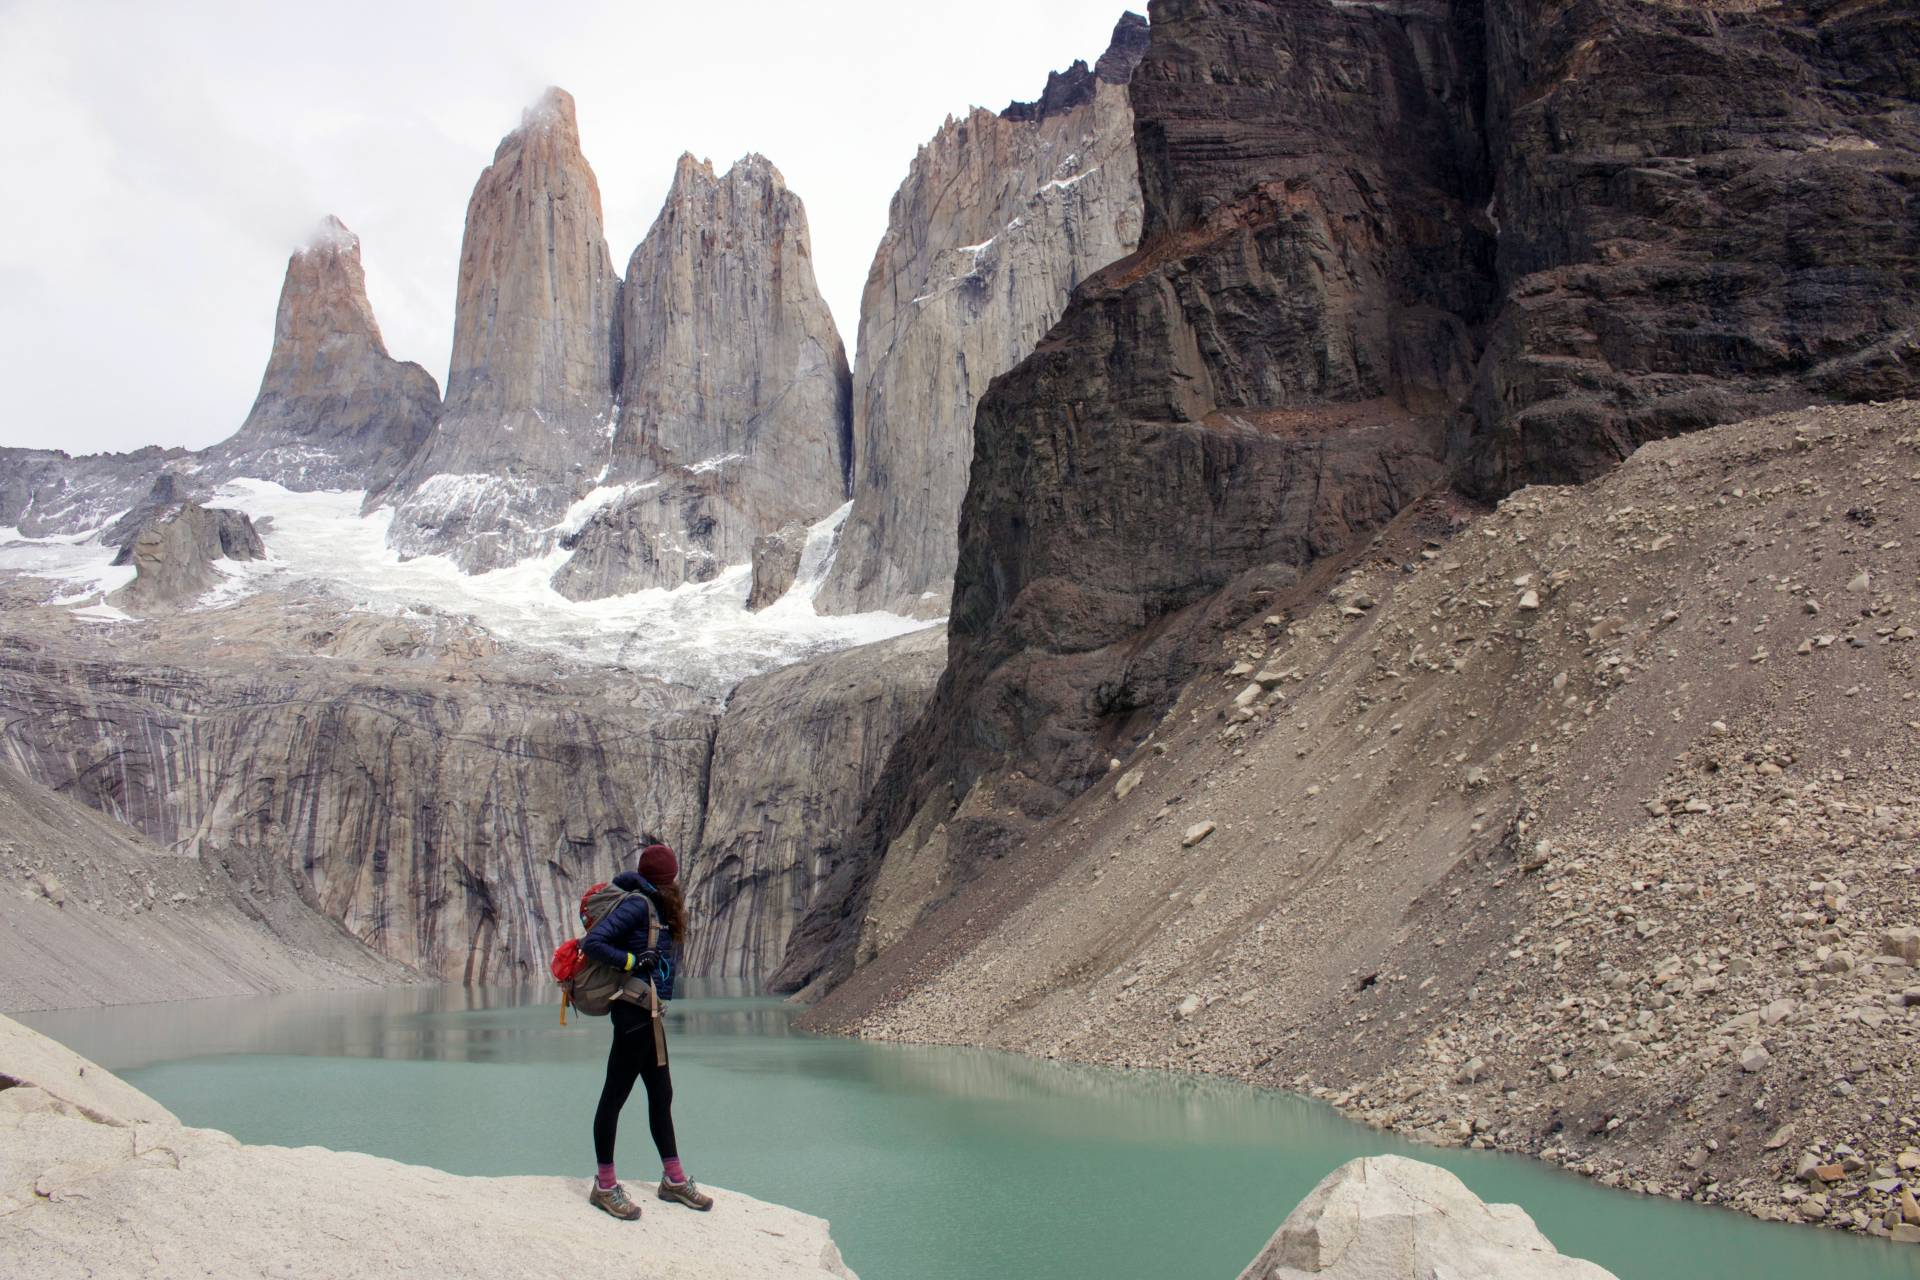 Backpacking in Torres Del Paine National Park, February 2016